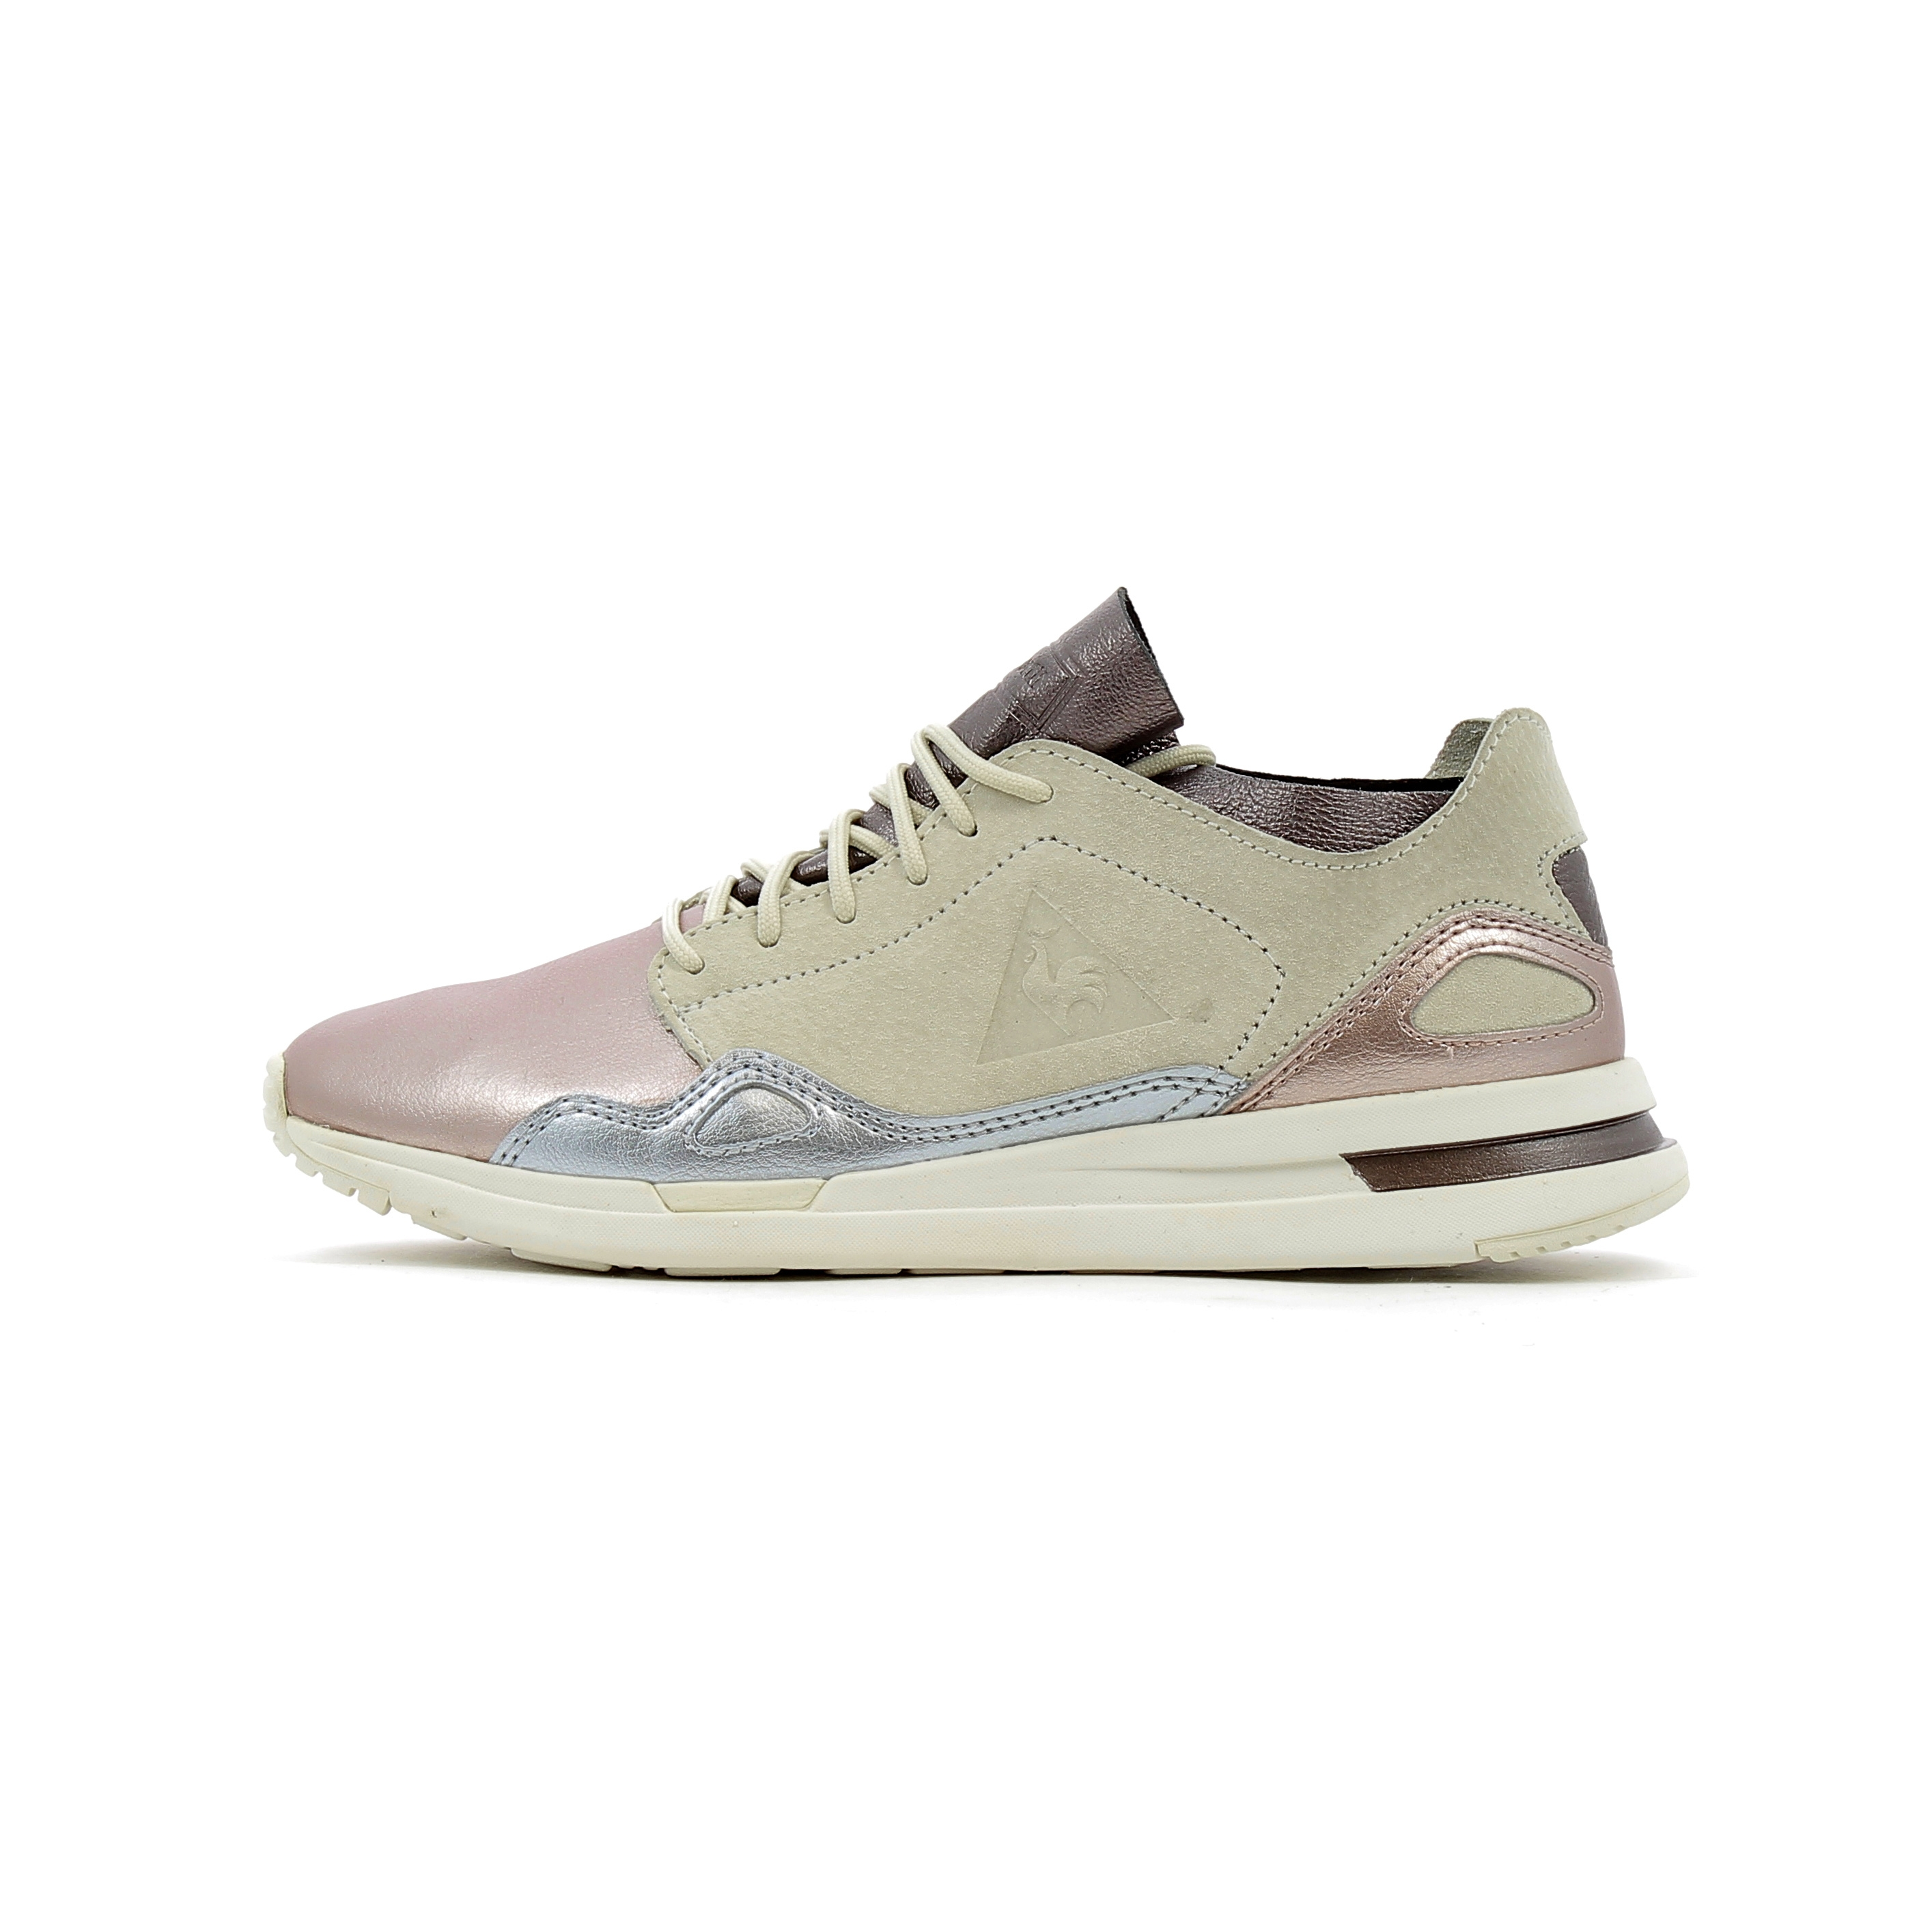 Lcs Mix R Baskets Coq Metallic Sportif W Basses Flow Leather Le yw80vmNnO